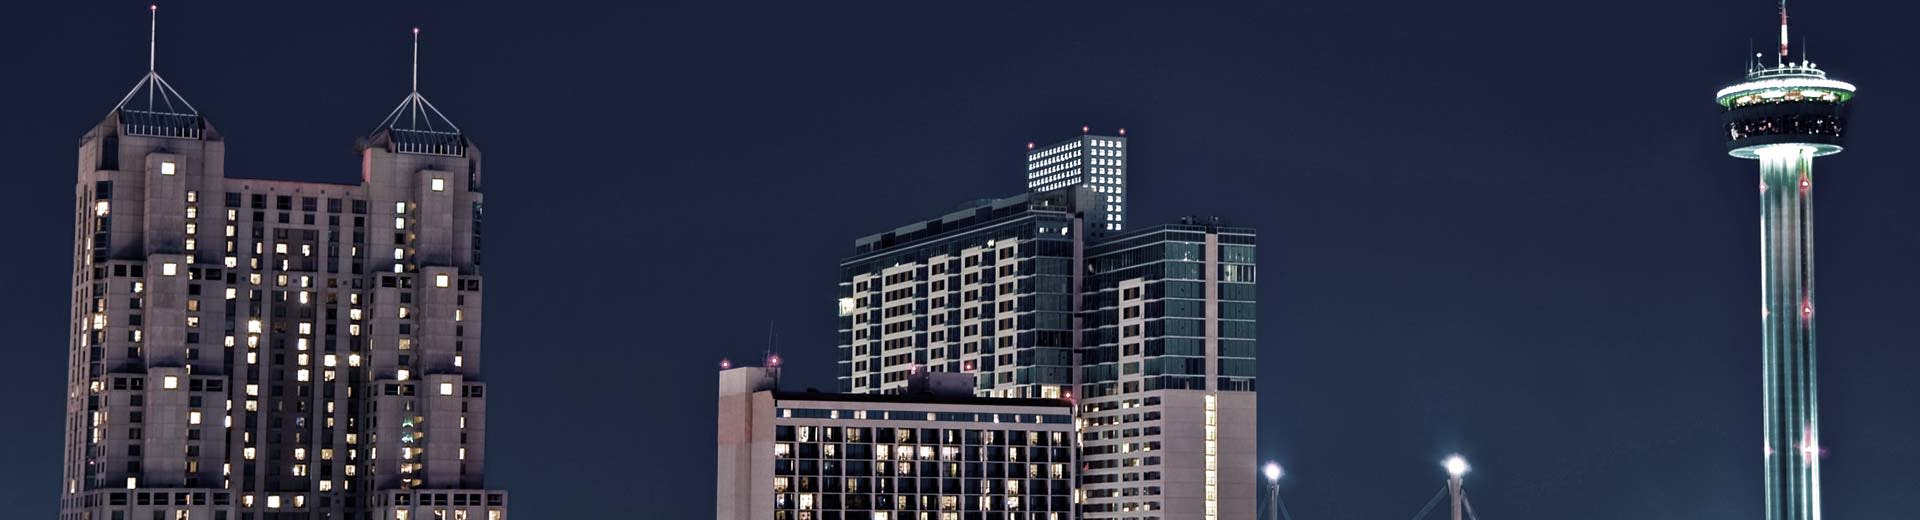 Two skyscrapers pierce the starless night sky in San Antonio